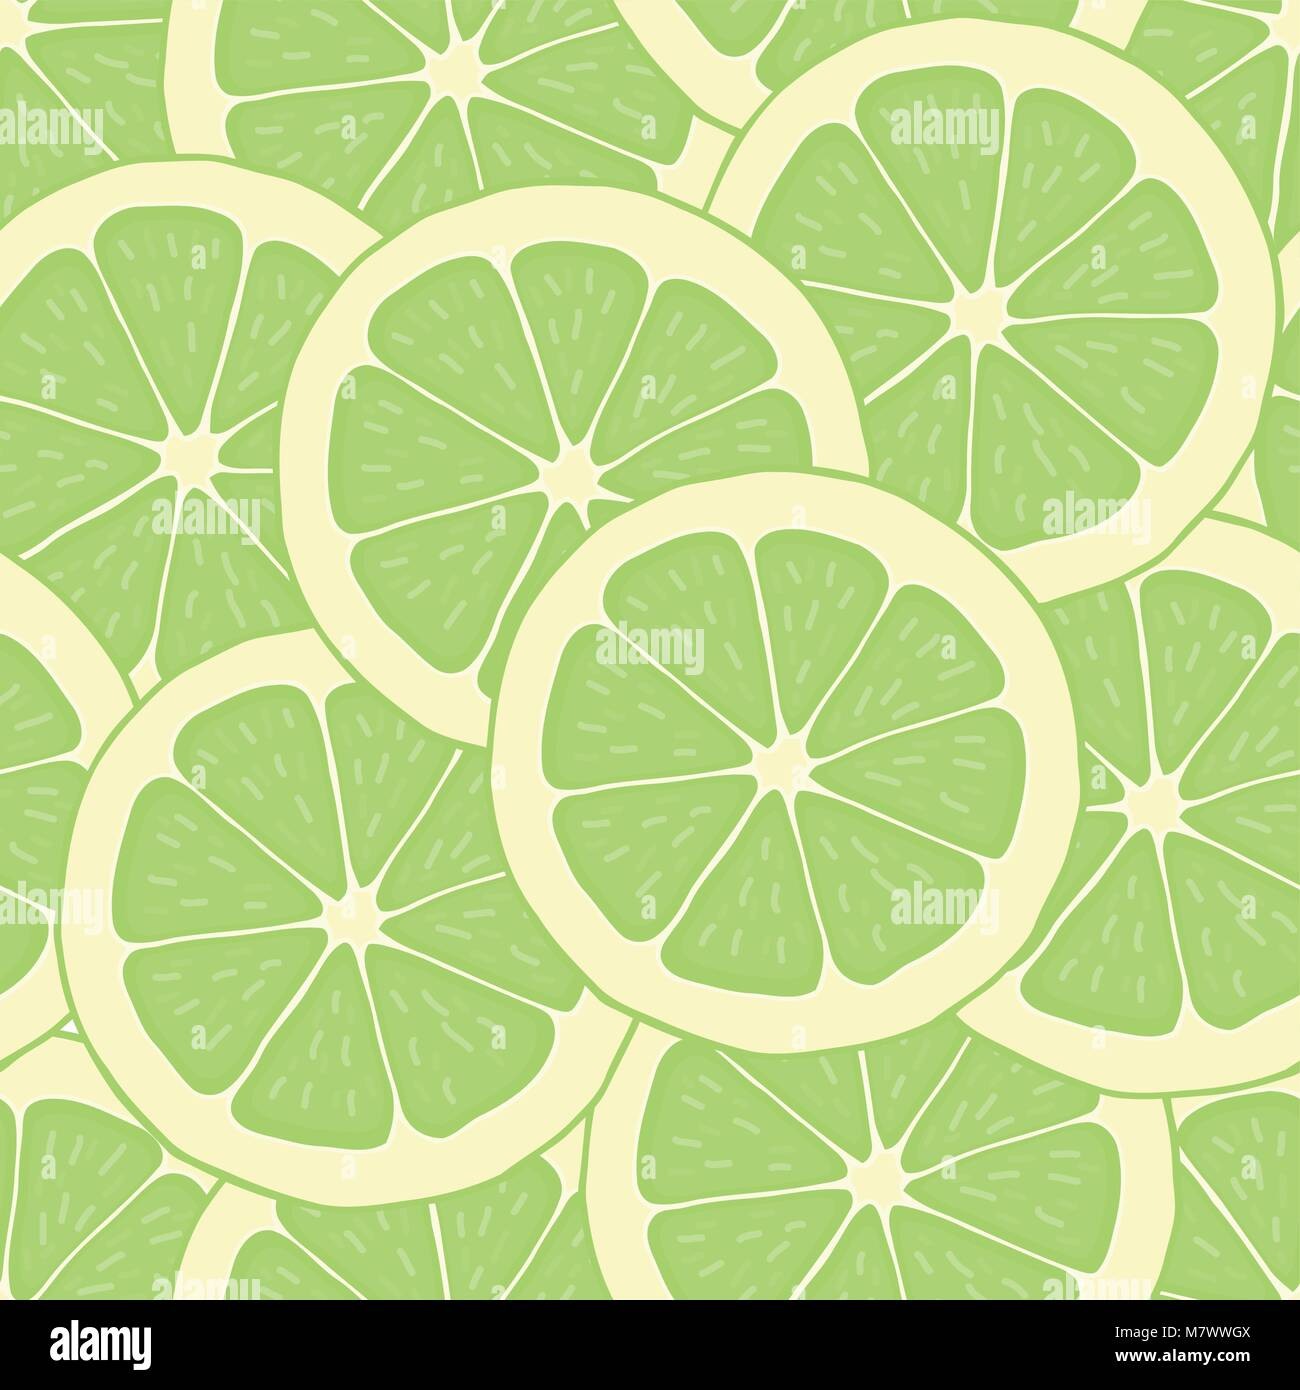 Wallpaper Lime Vector Illustration Seamless Pattern Background